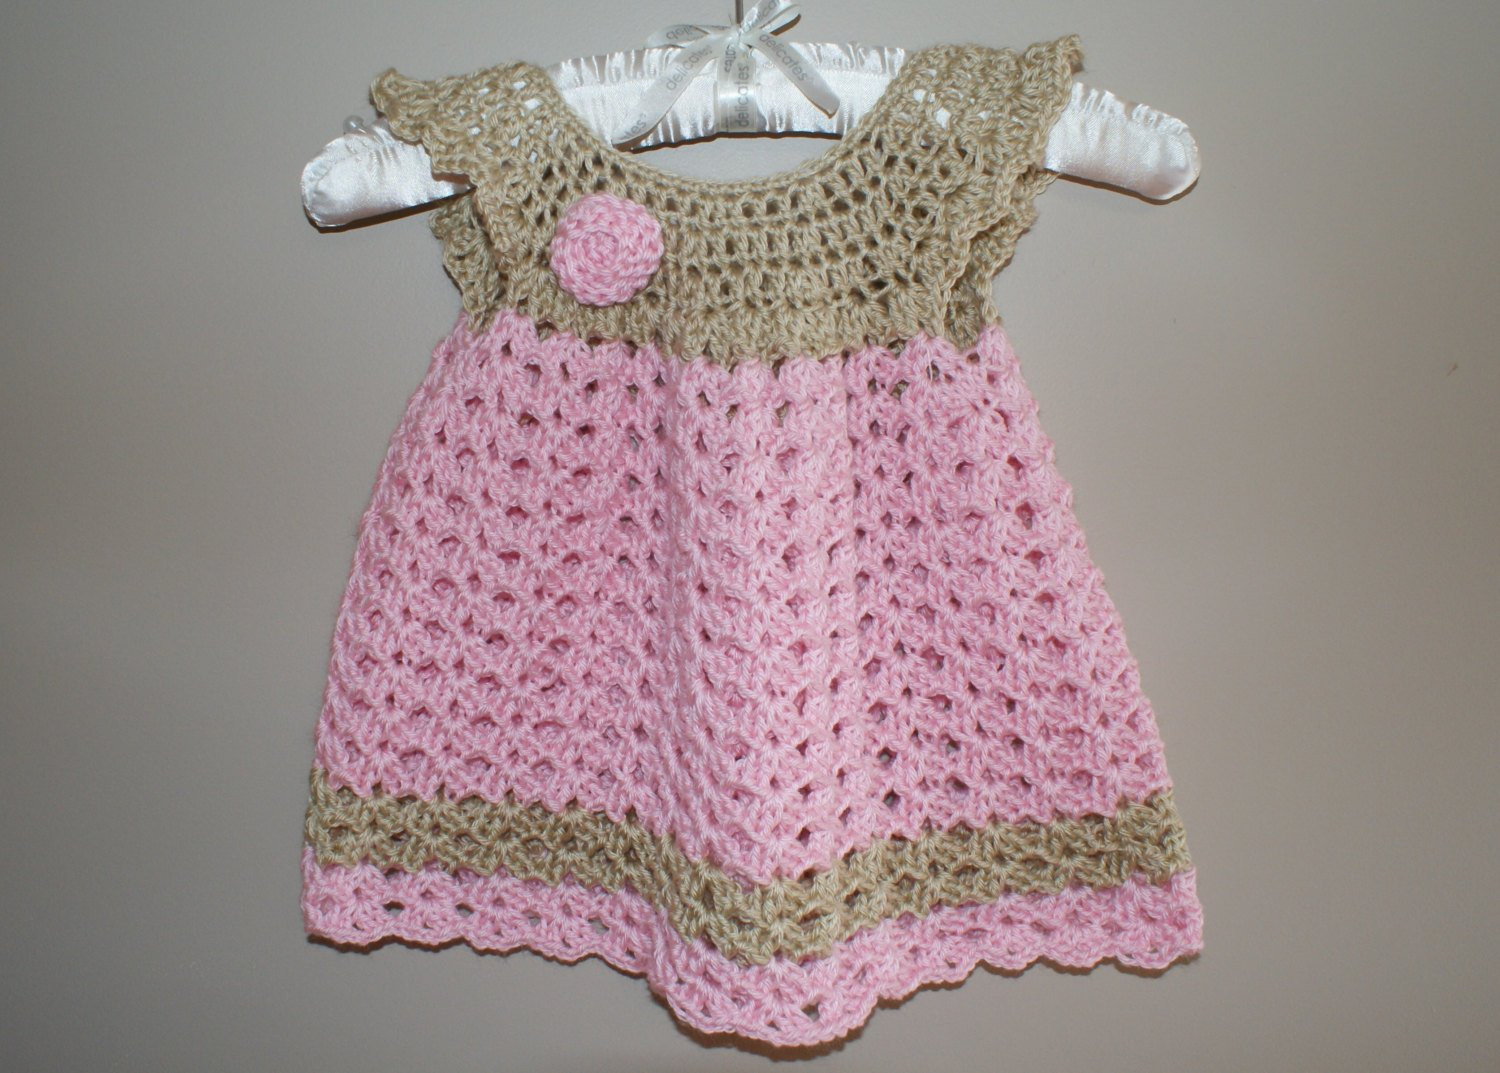 Crochet Baby Outfits Fresh Baby Dress Pinafore Crochet Newborn Dress Infant Baby Girl Of Marvelous 44 Photos Crochet Baby Outfits